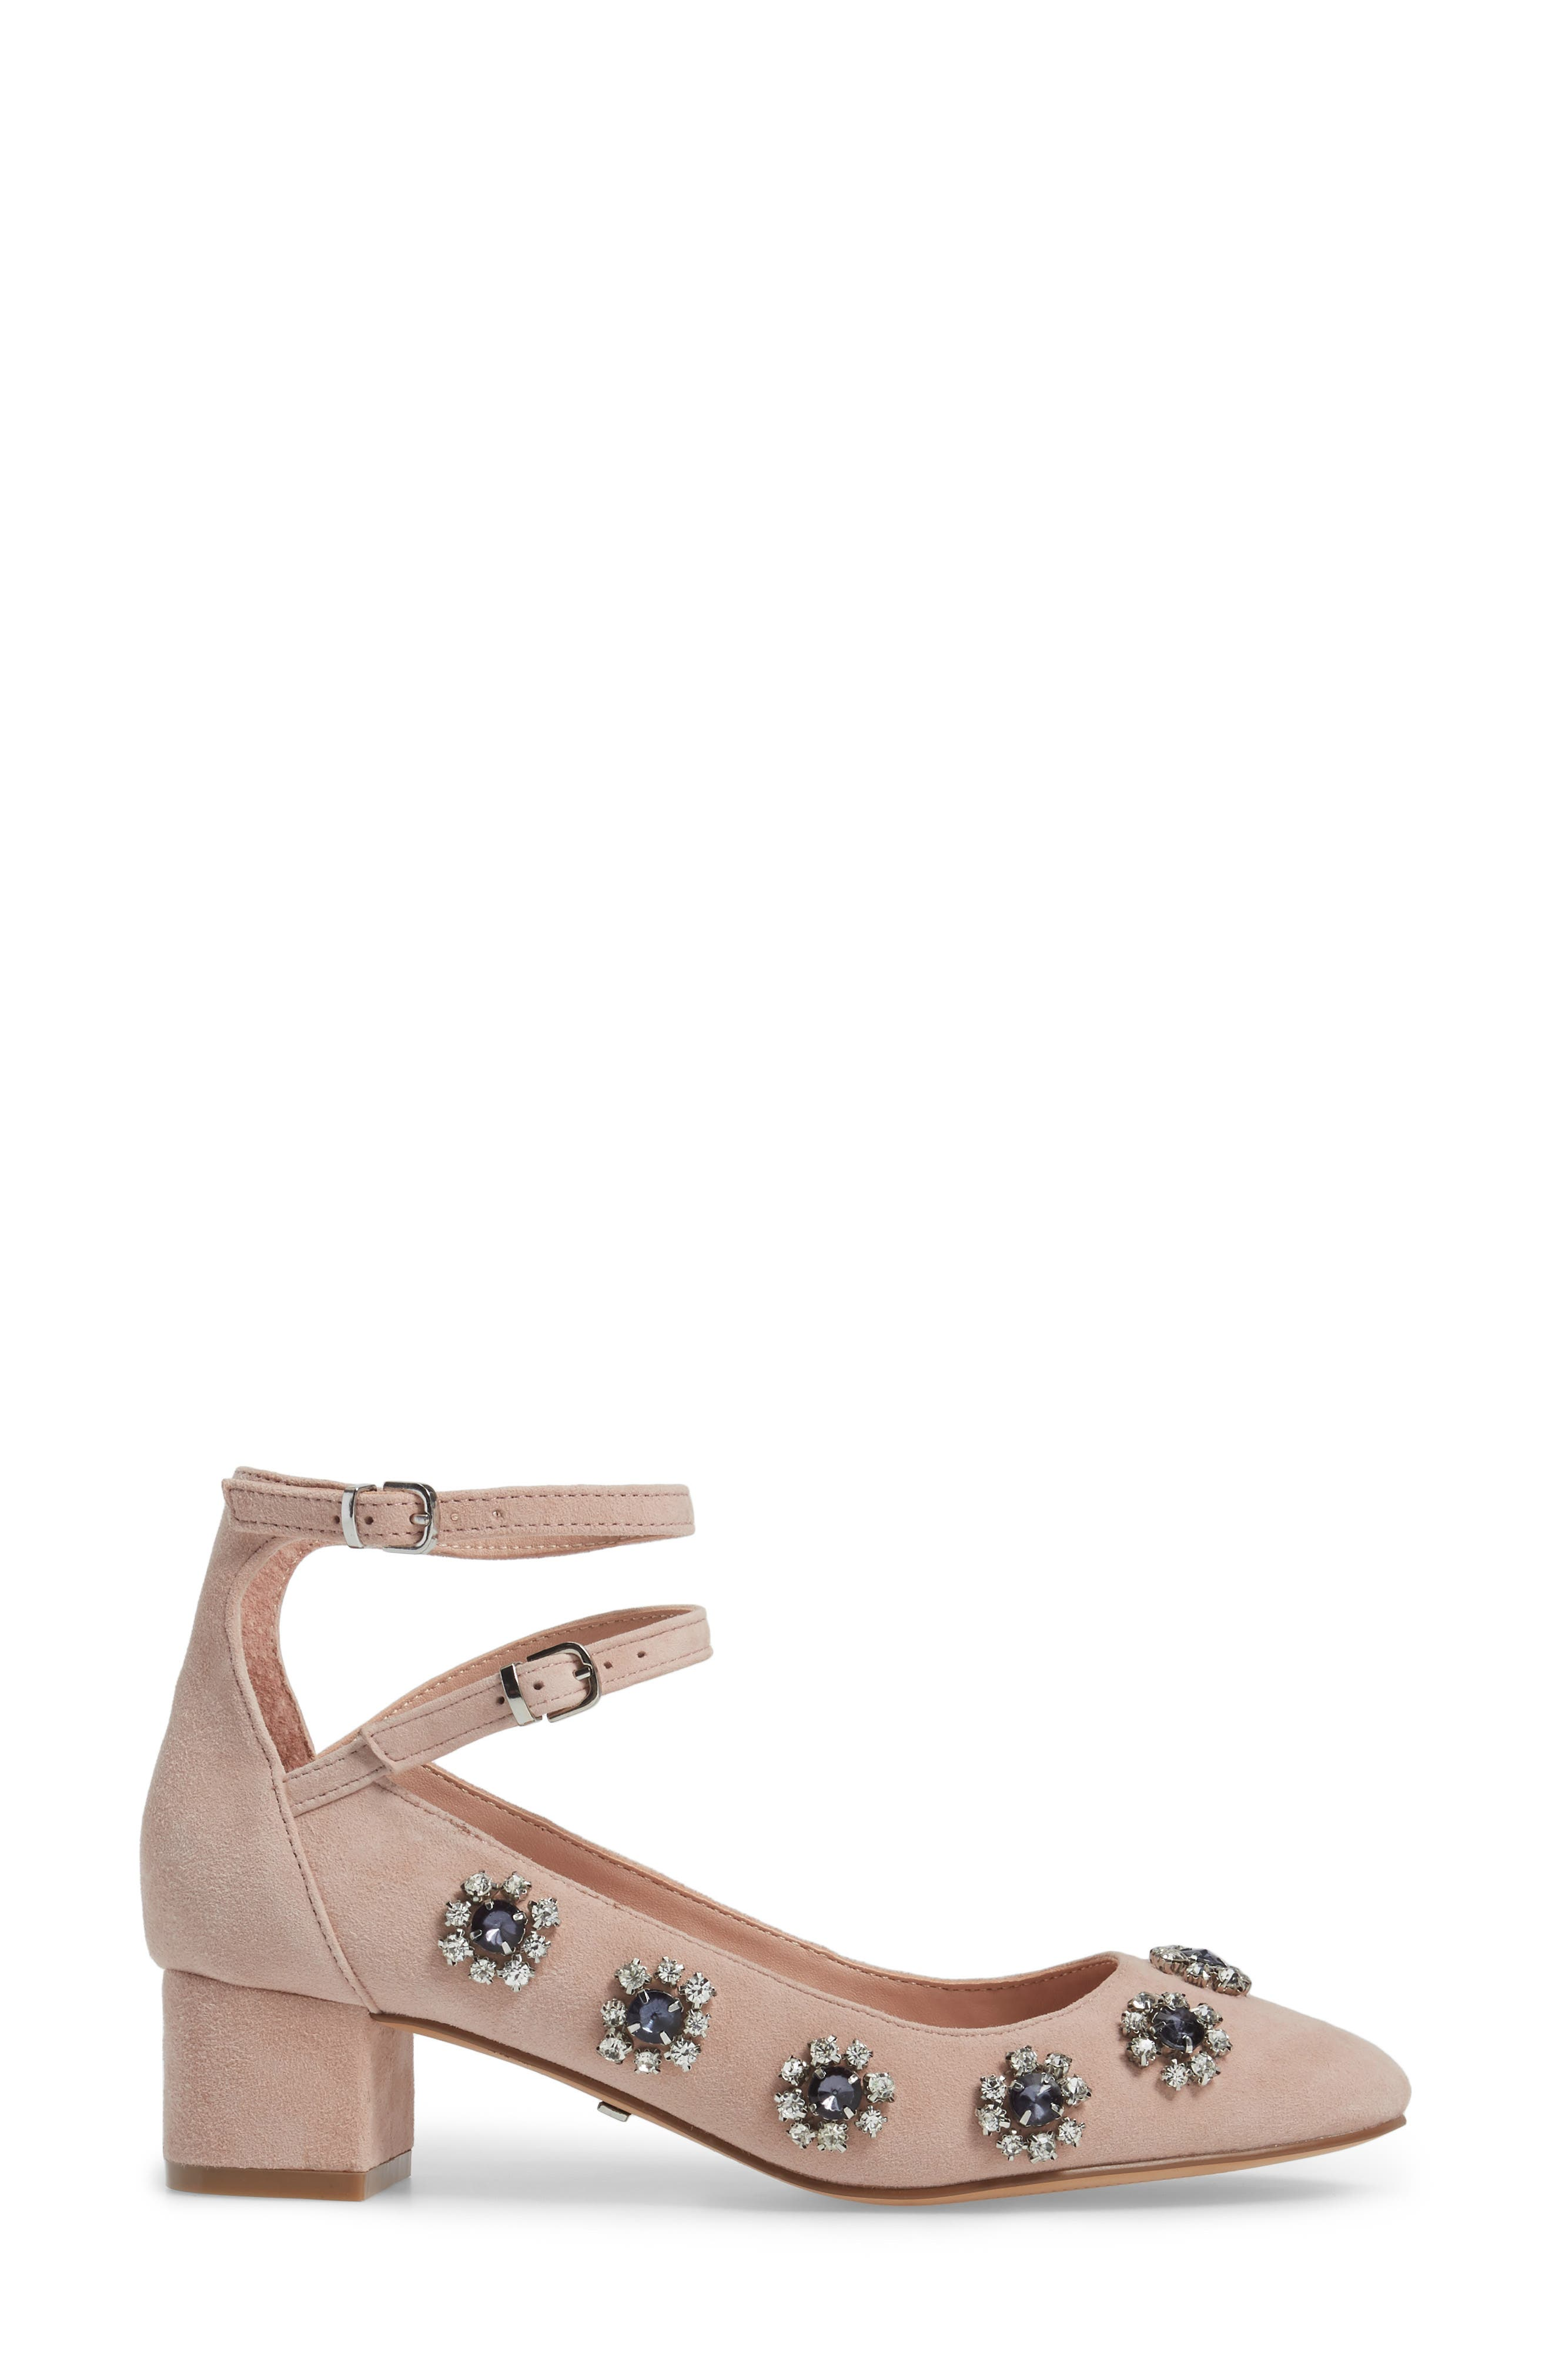 Jaida Crystal Embellished Pump,                             Alternate thumbnail 3, color,                             250